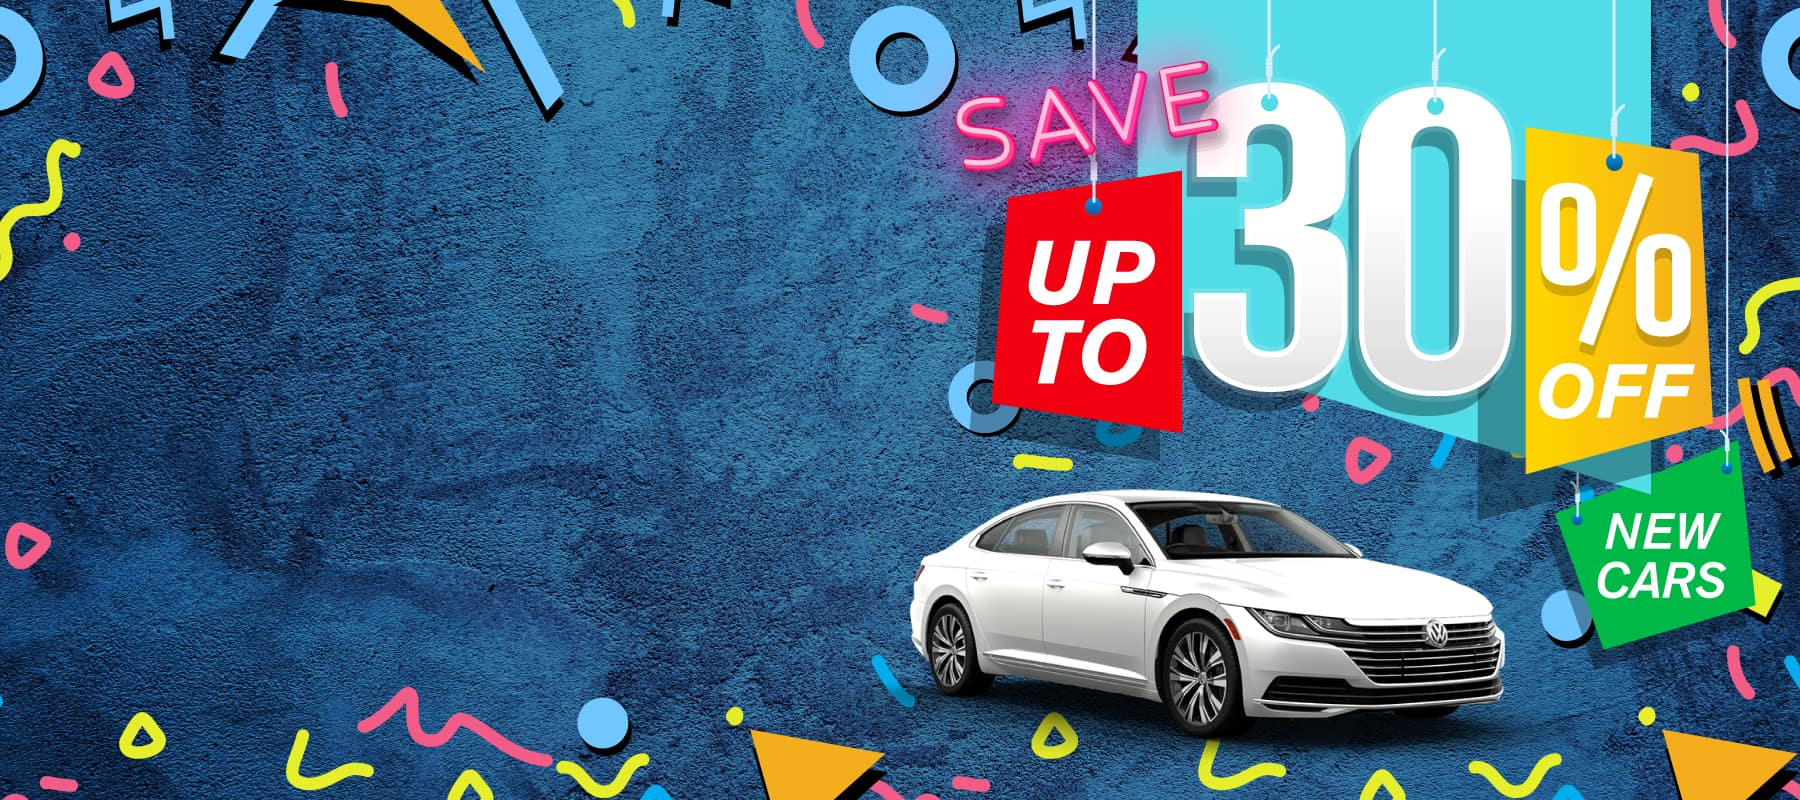 Save up to 30% off New Cars at Volkswagen SouthTowne!